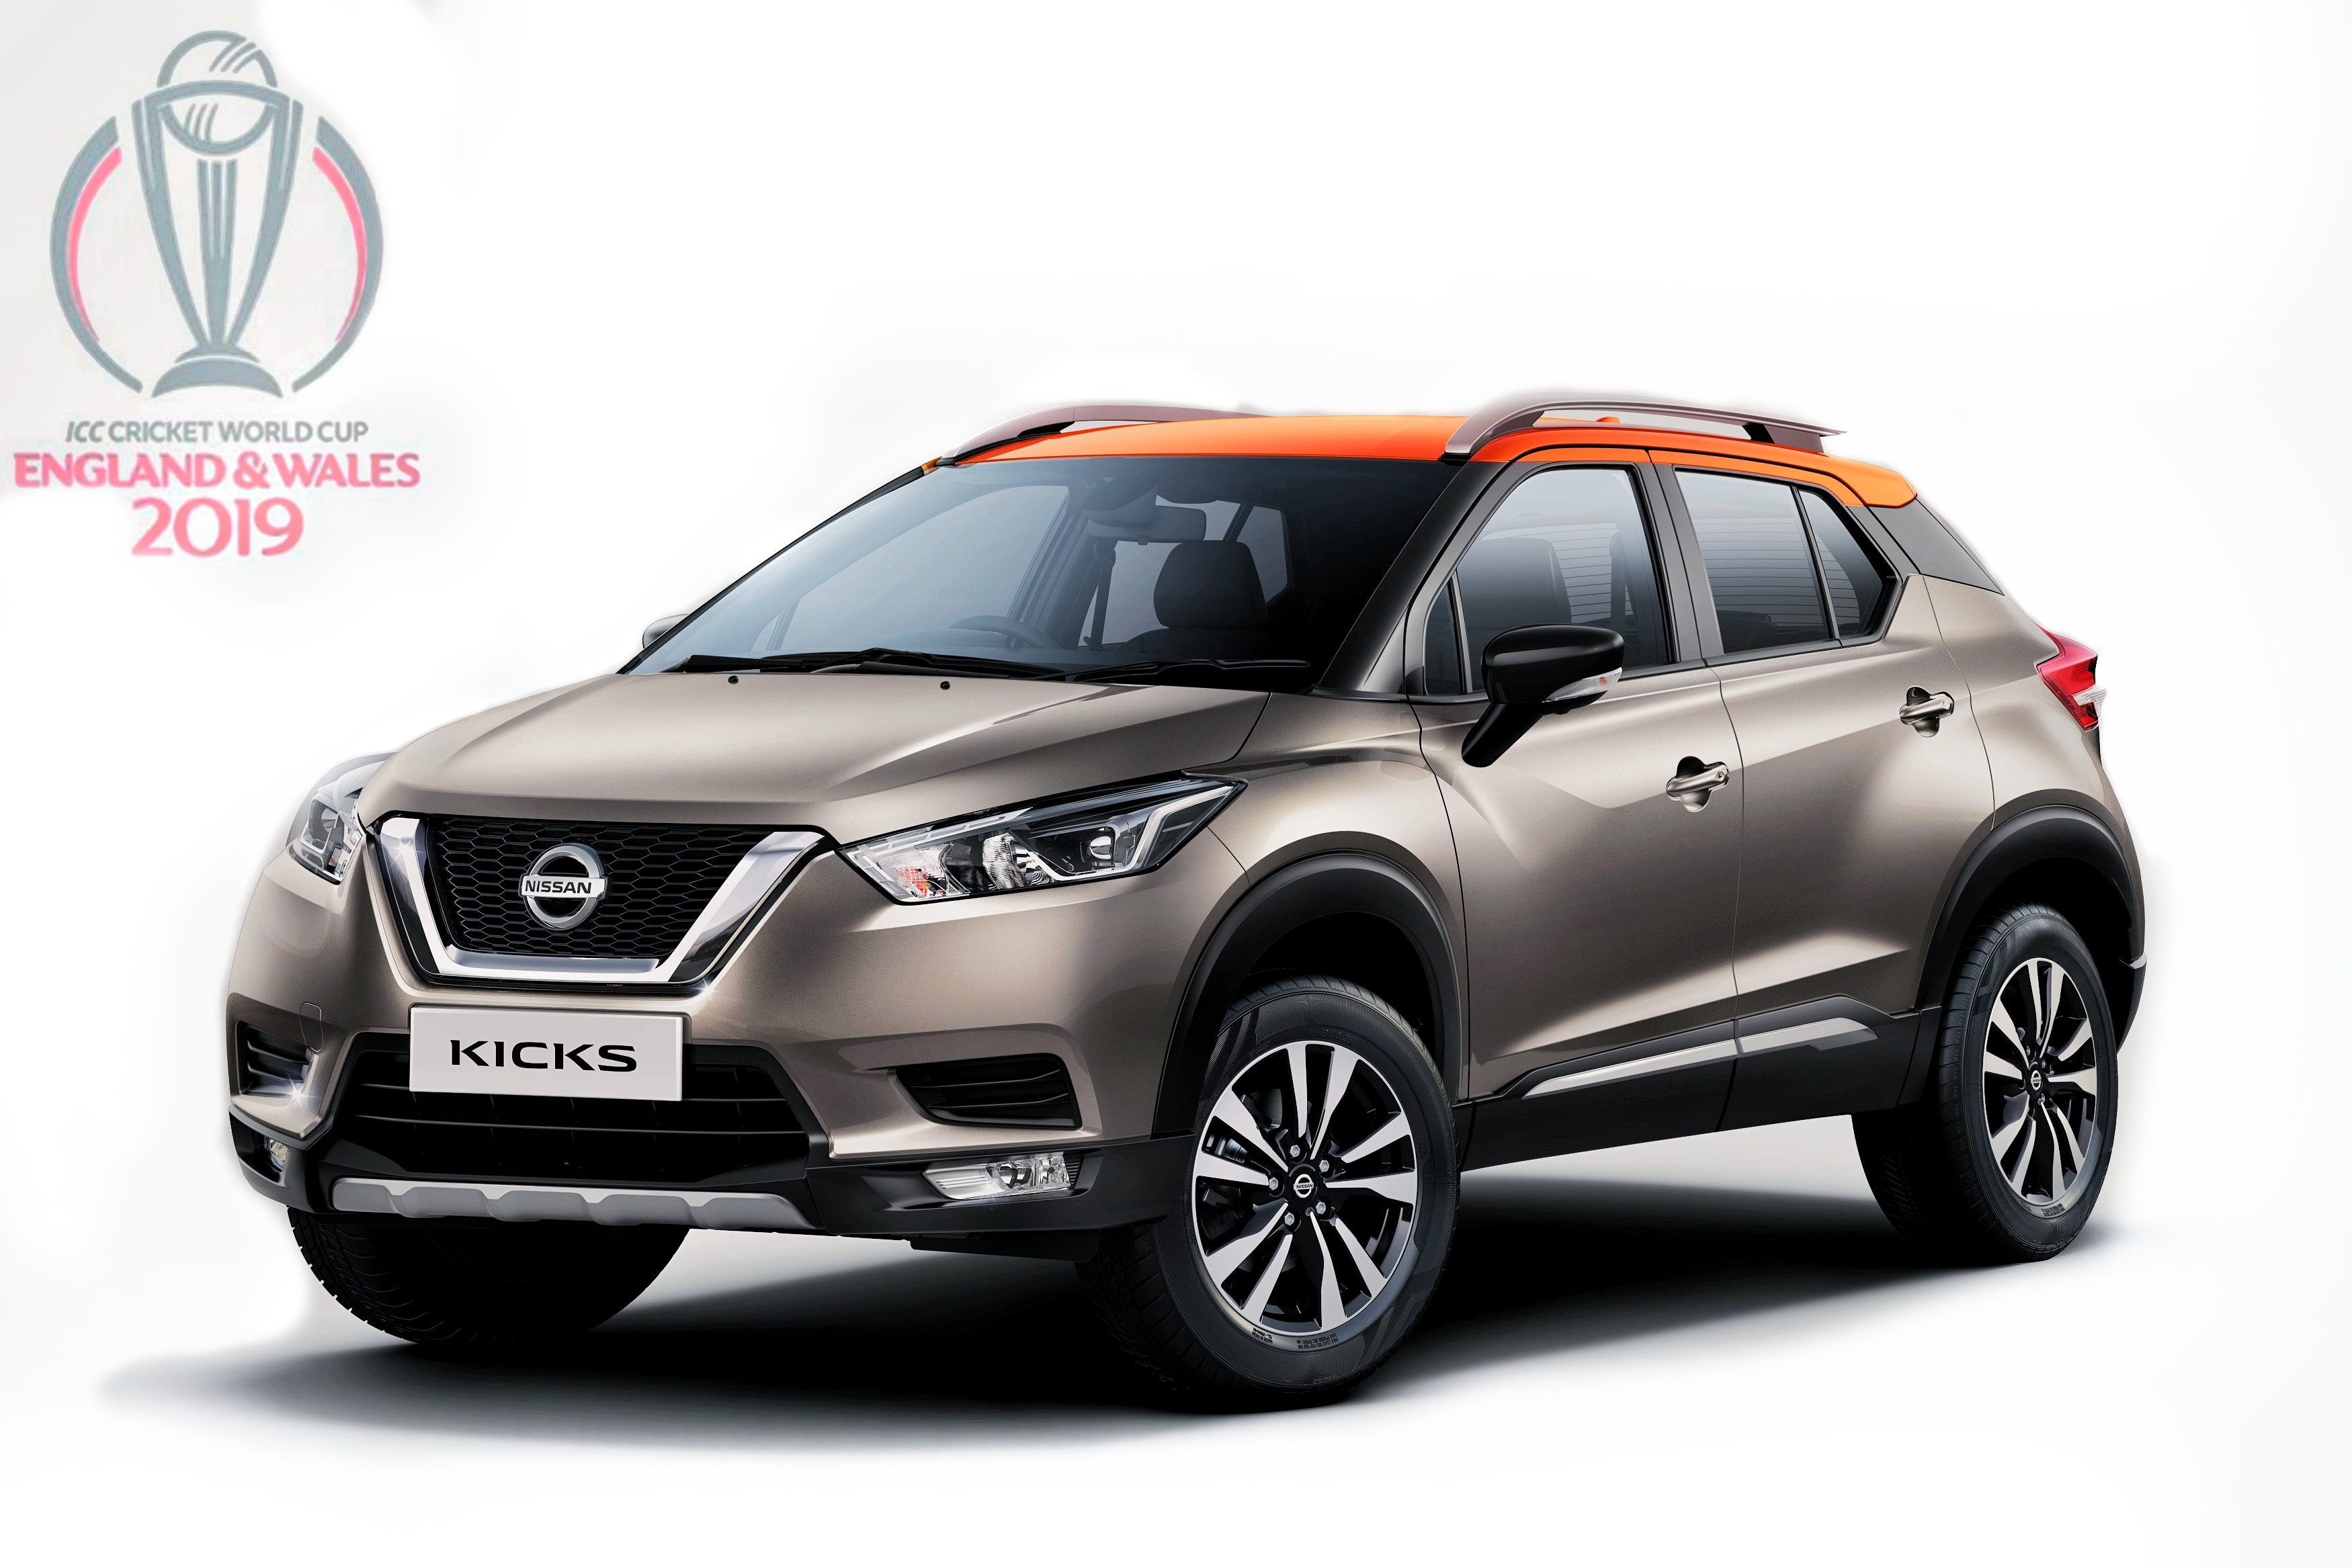 Photo of Nissan Kicks is the official Car for ICC Cricket World Cup 2019